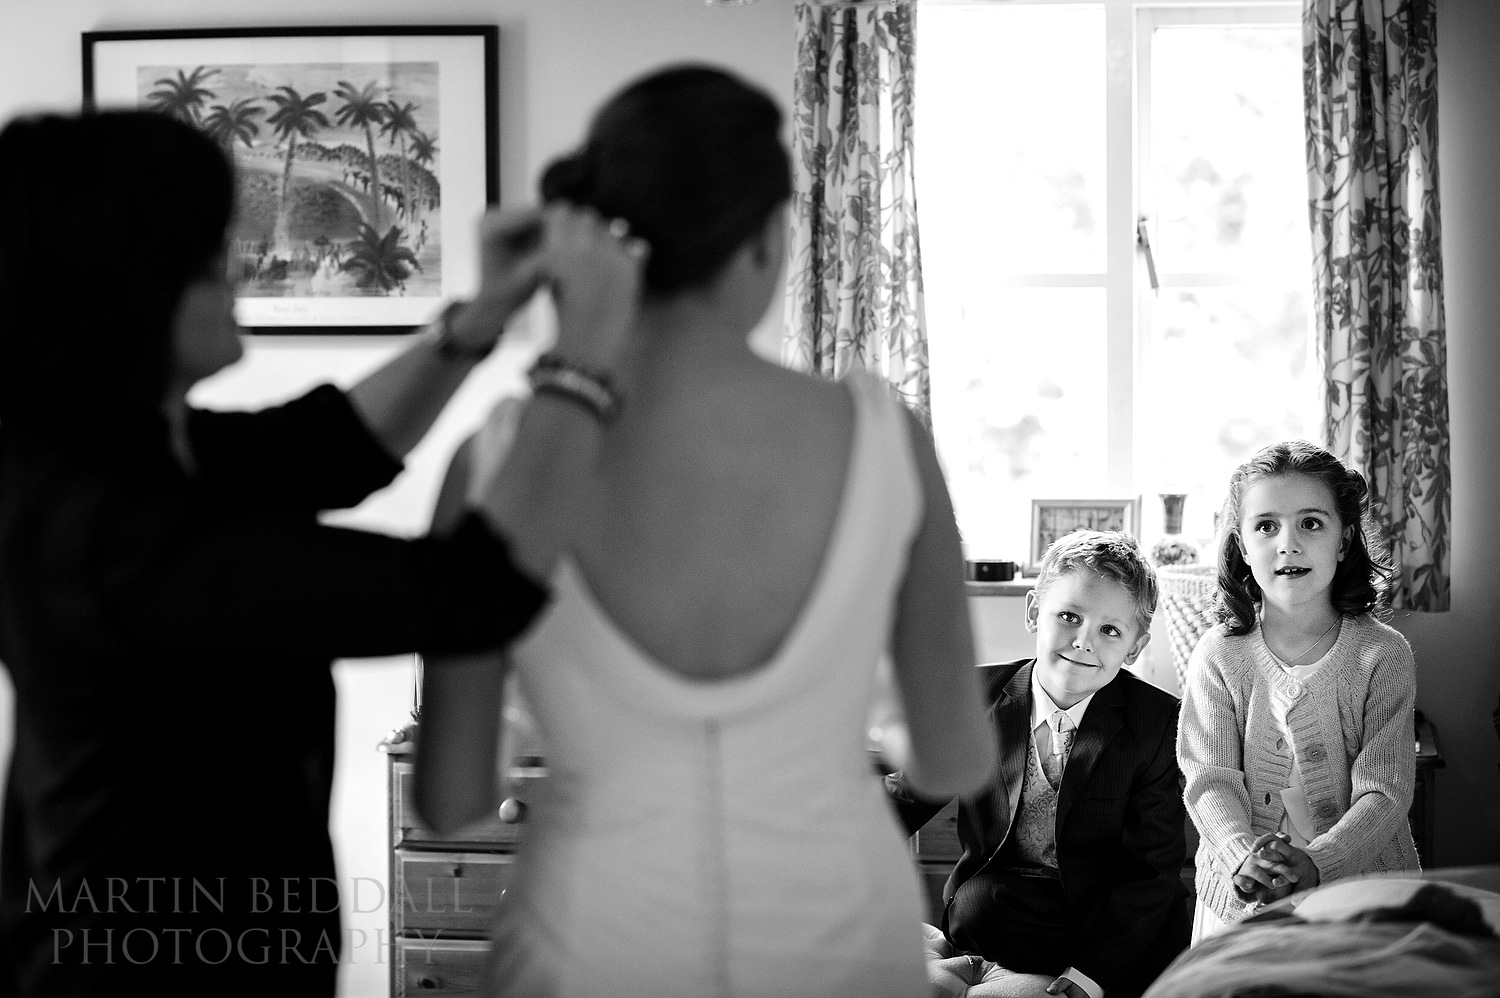 Watching the bride get ready